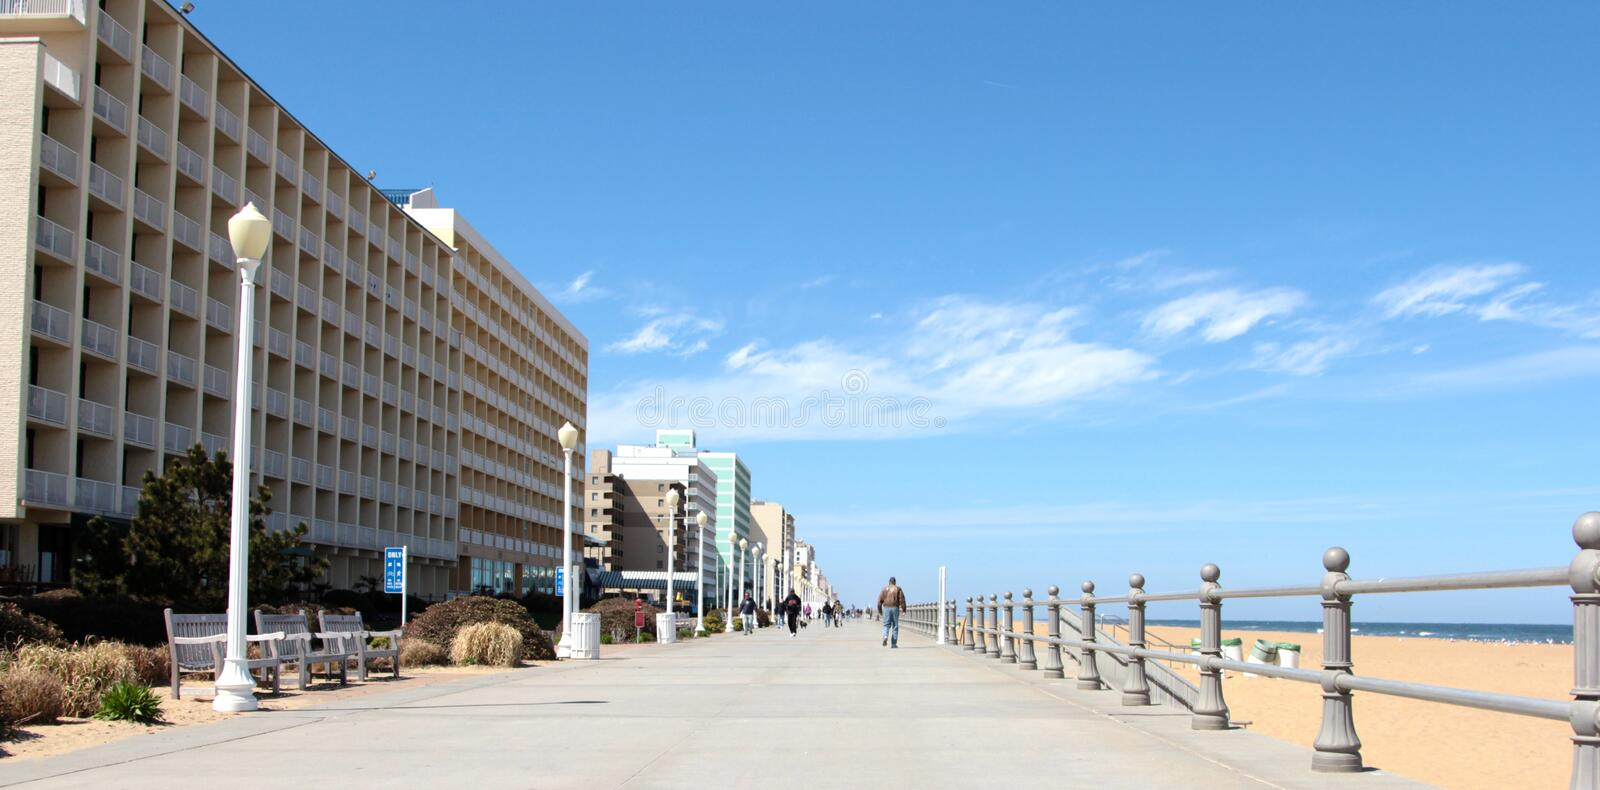 The Boardwalk Virginia Beach USA. The Famous Boardwalk Virginia Beach, Virginia United States royalty free stock images